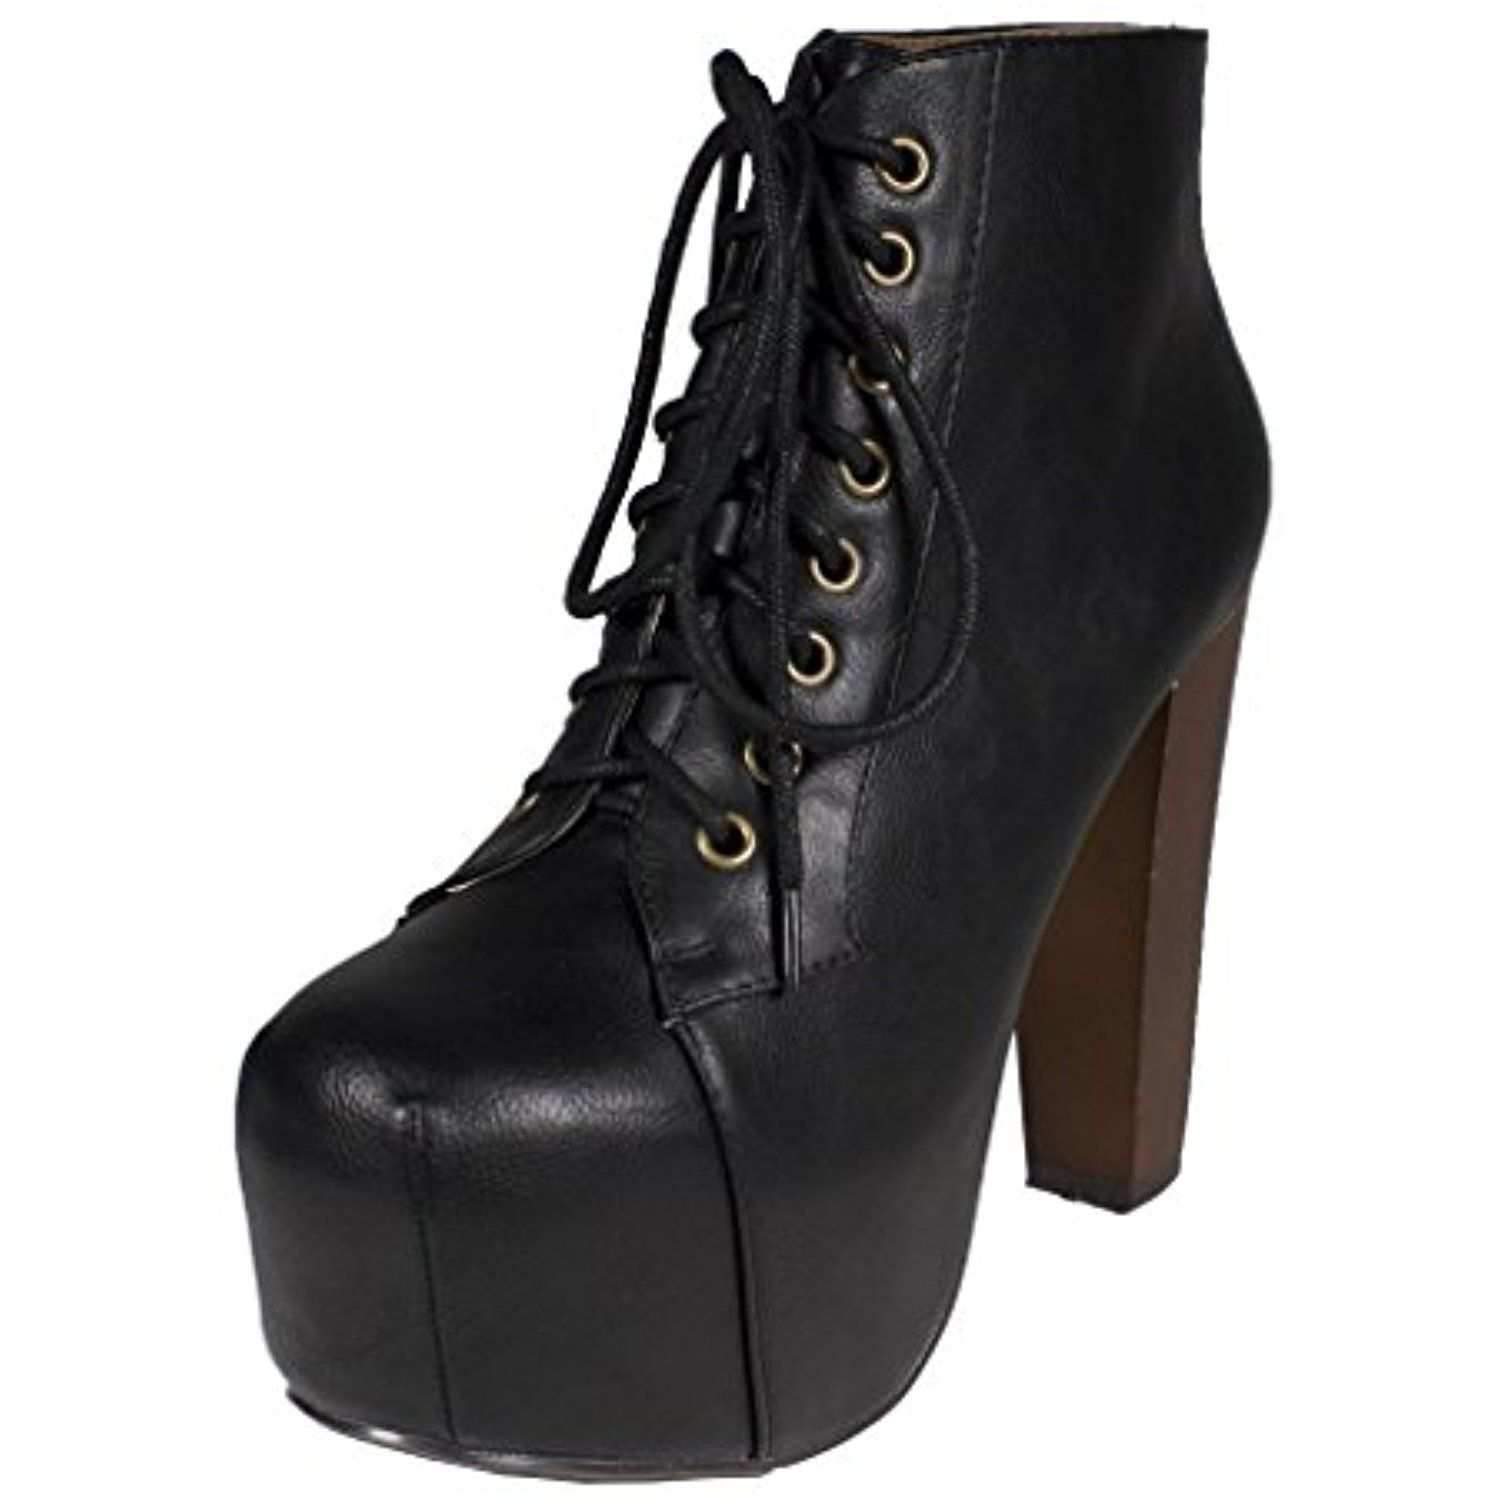 Lustacious Women's Lace Up Hidden Platform Ankle Booties with Wooden Block Chunky High Heels